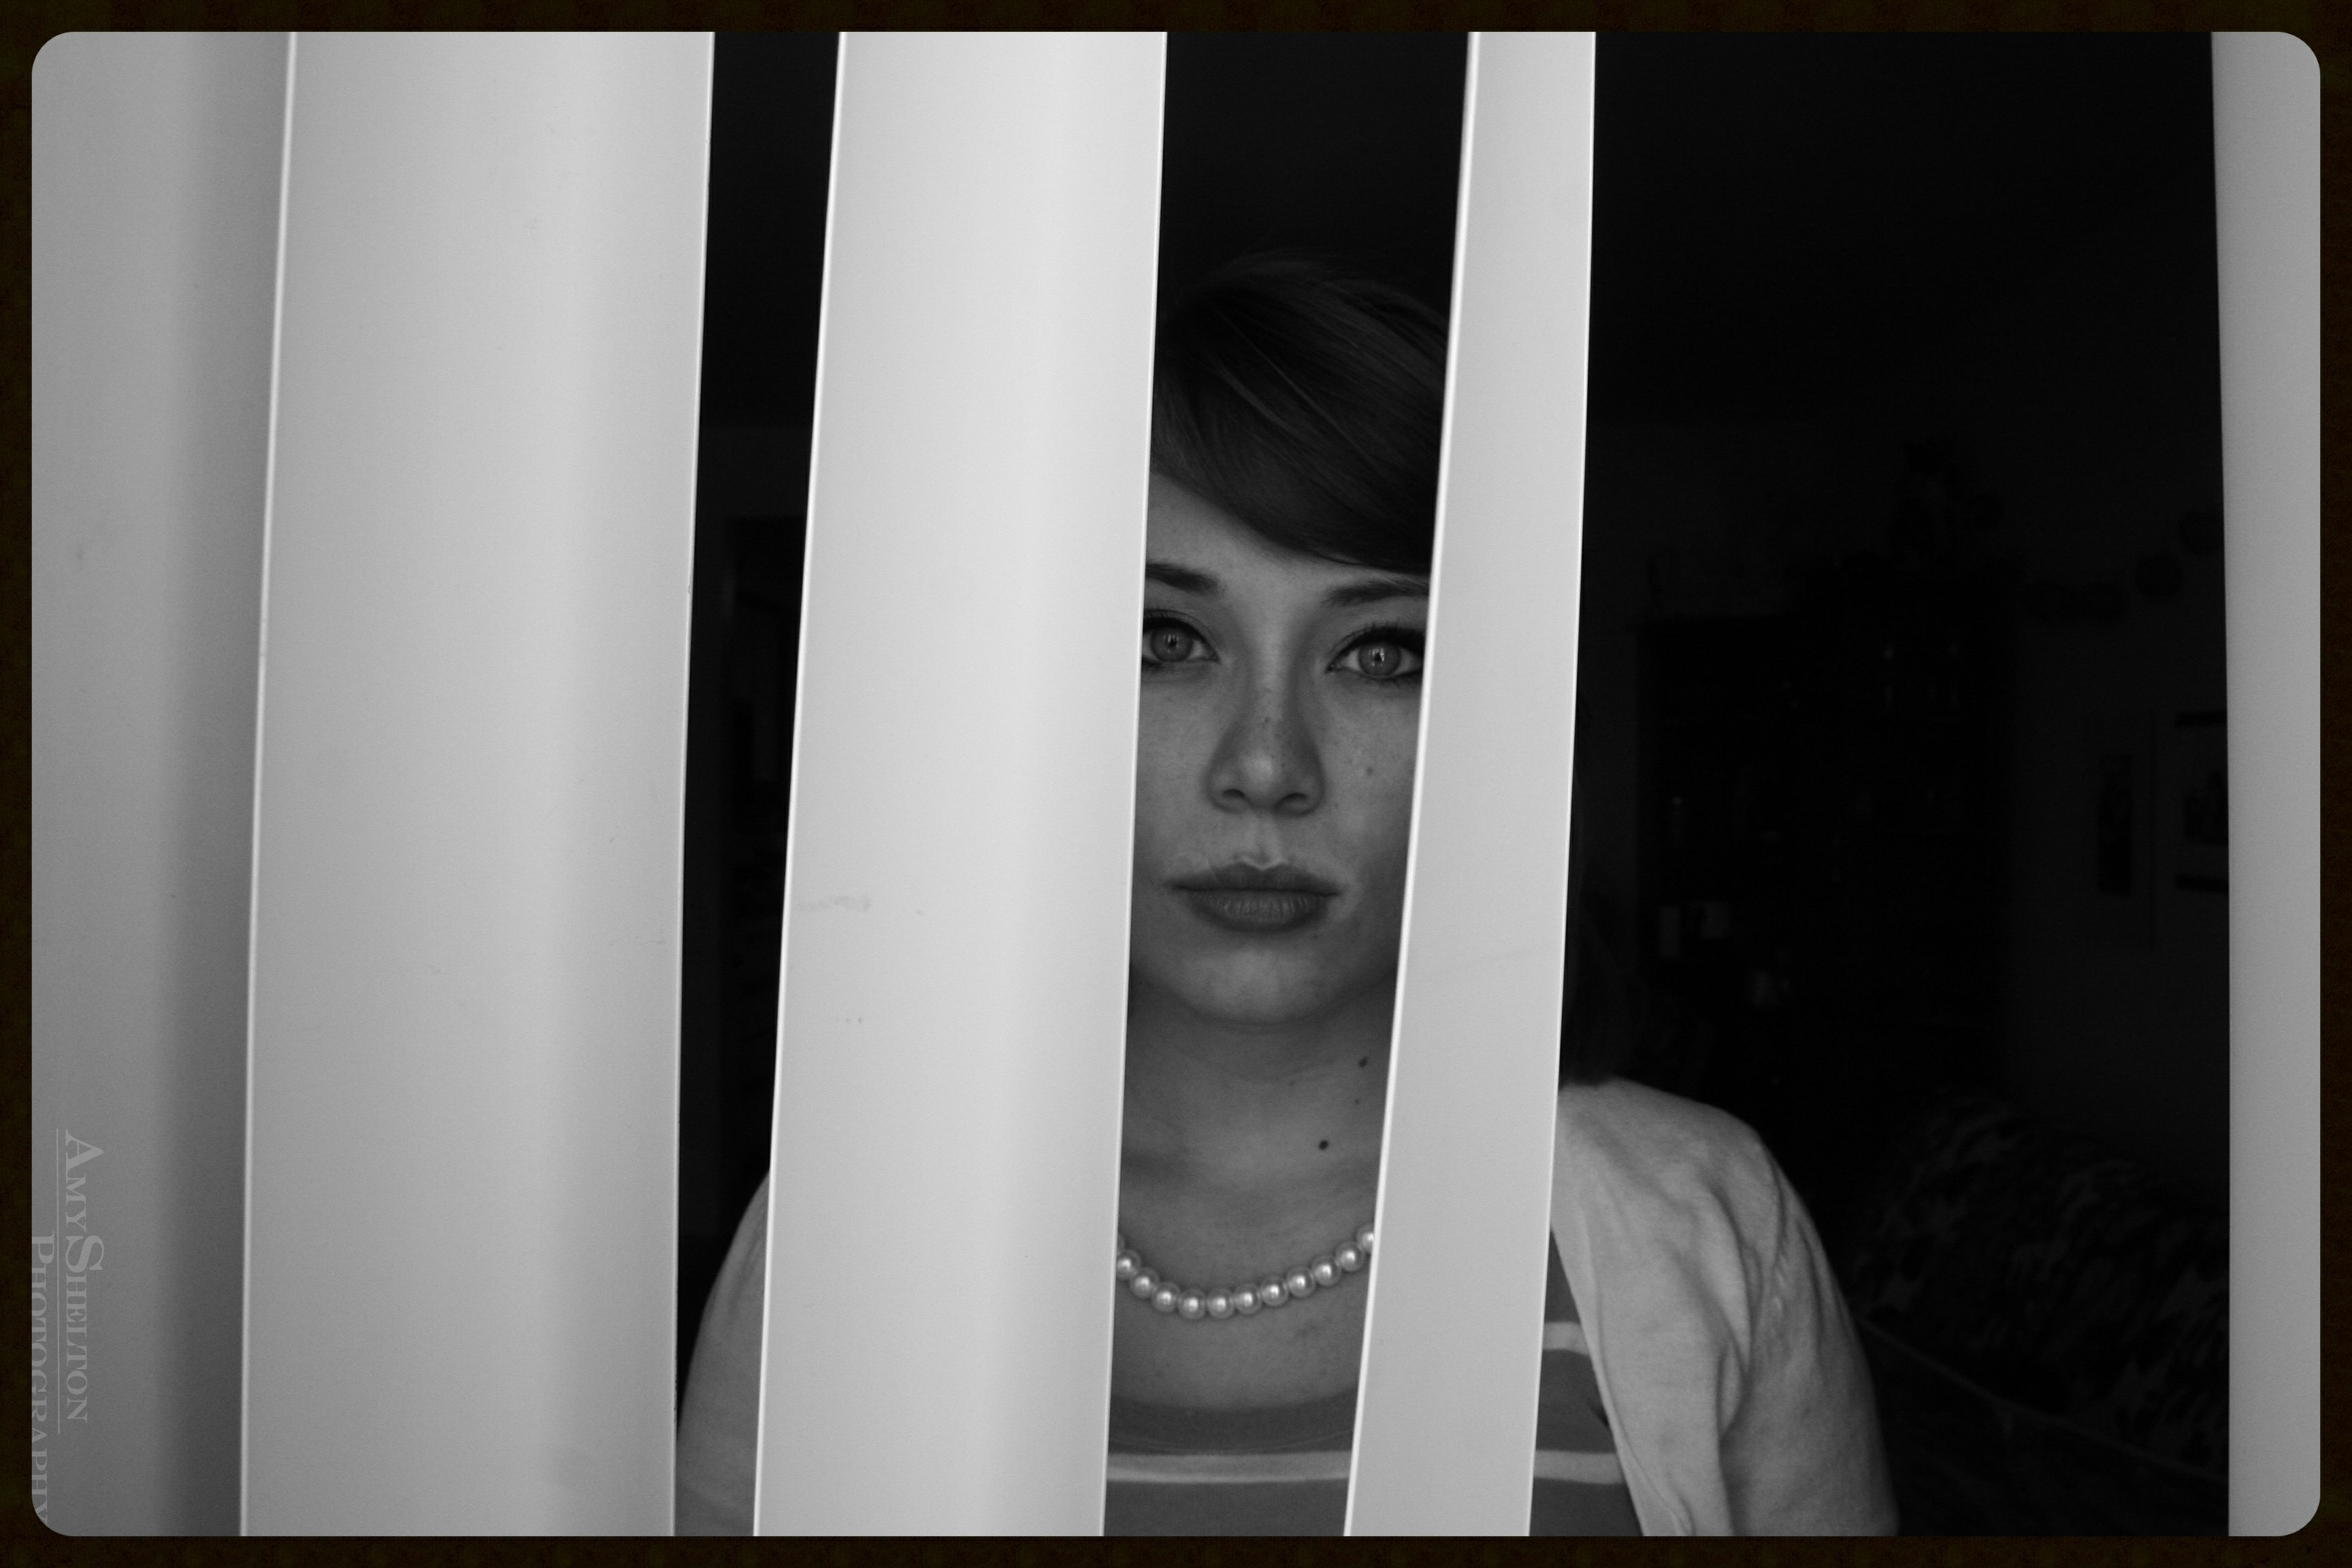 Jaclyn through Blinds